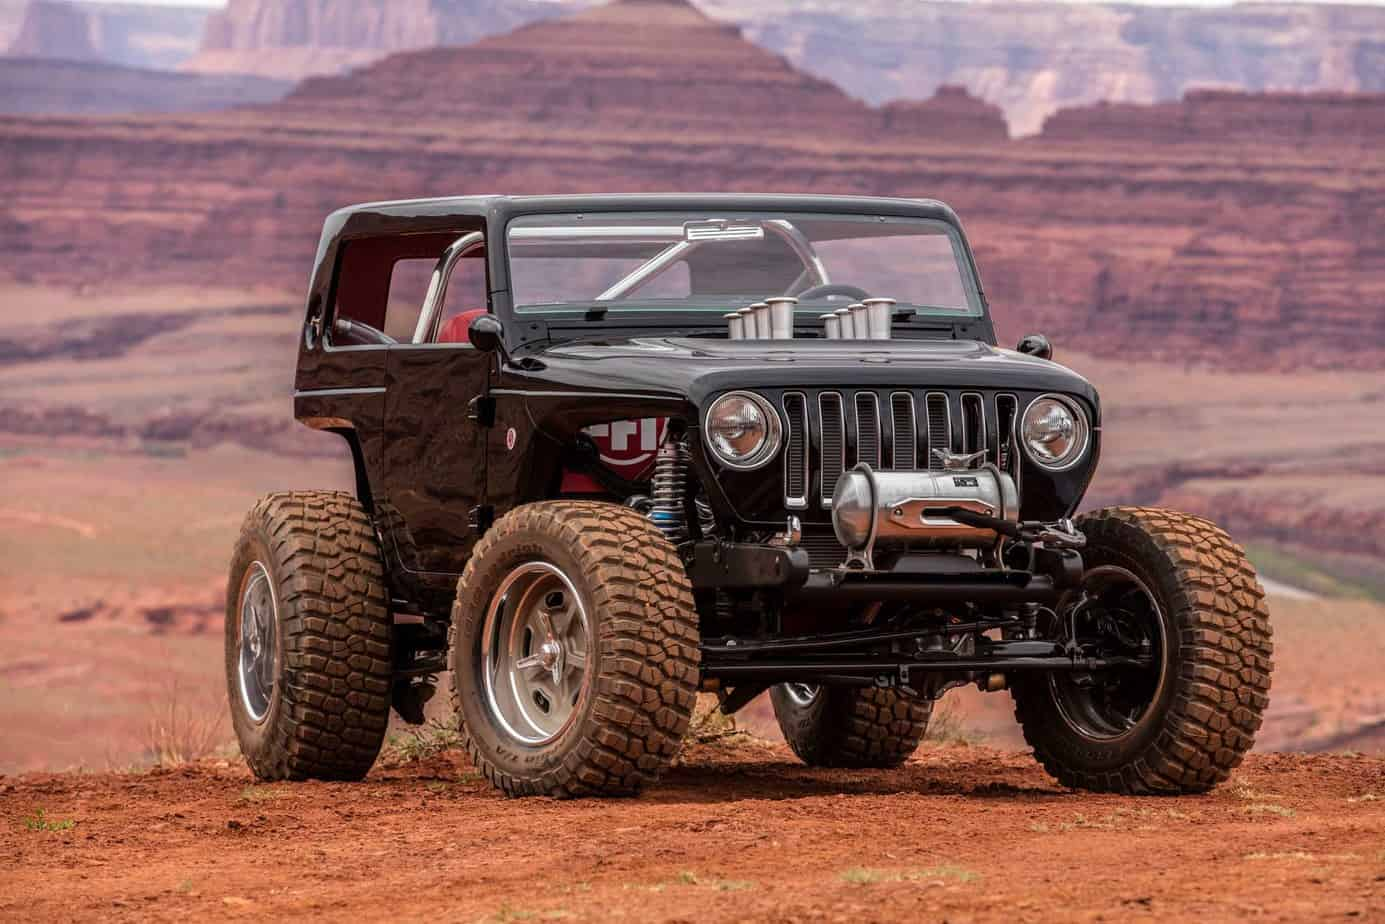 2017 Moab Jeep Concept Vehicles Released - Expedition Portal